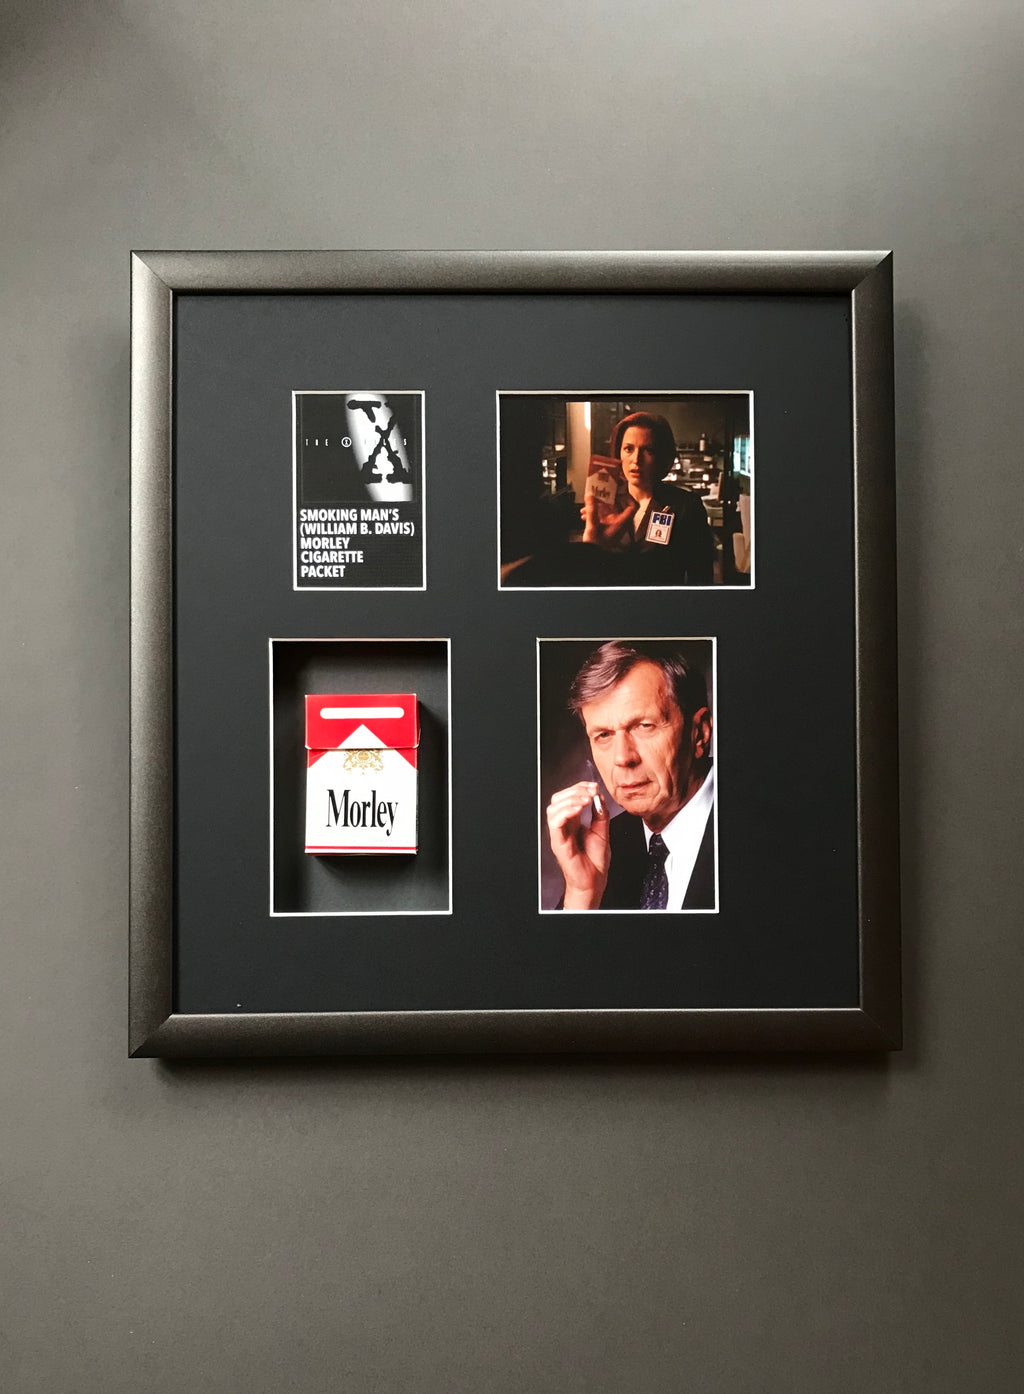 The X-Files - Smoking Man's (William B. Davis) Morley Cigarette Packet (SOLD)